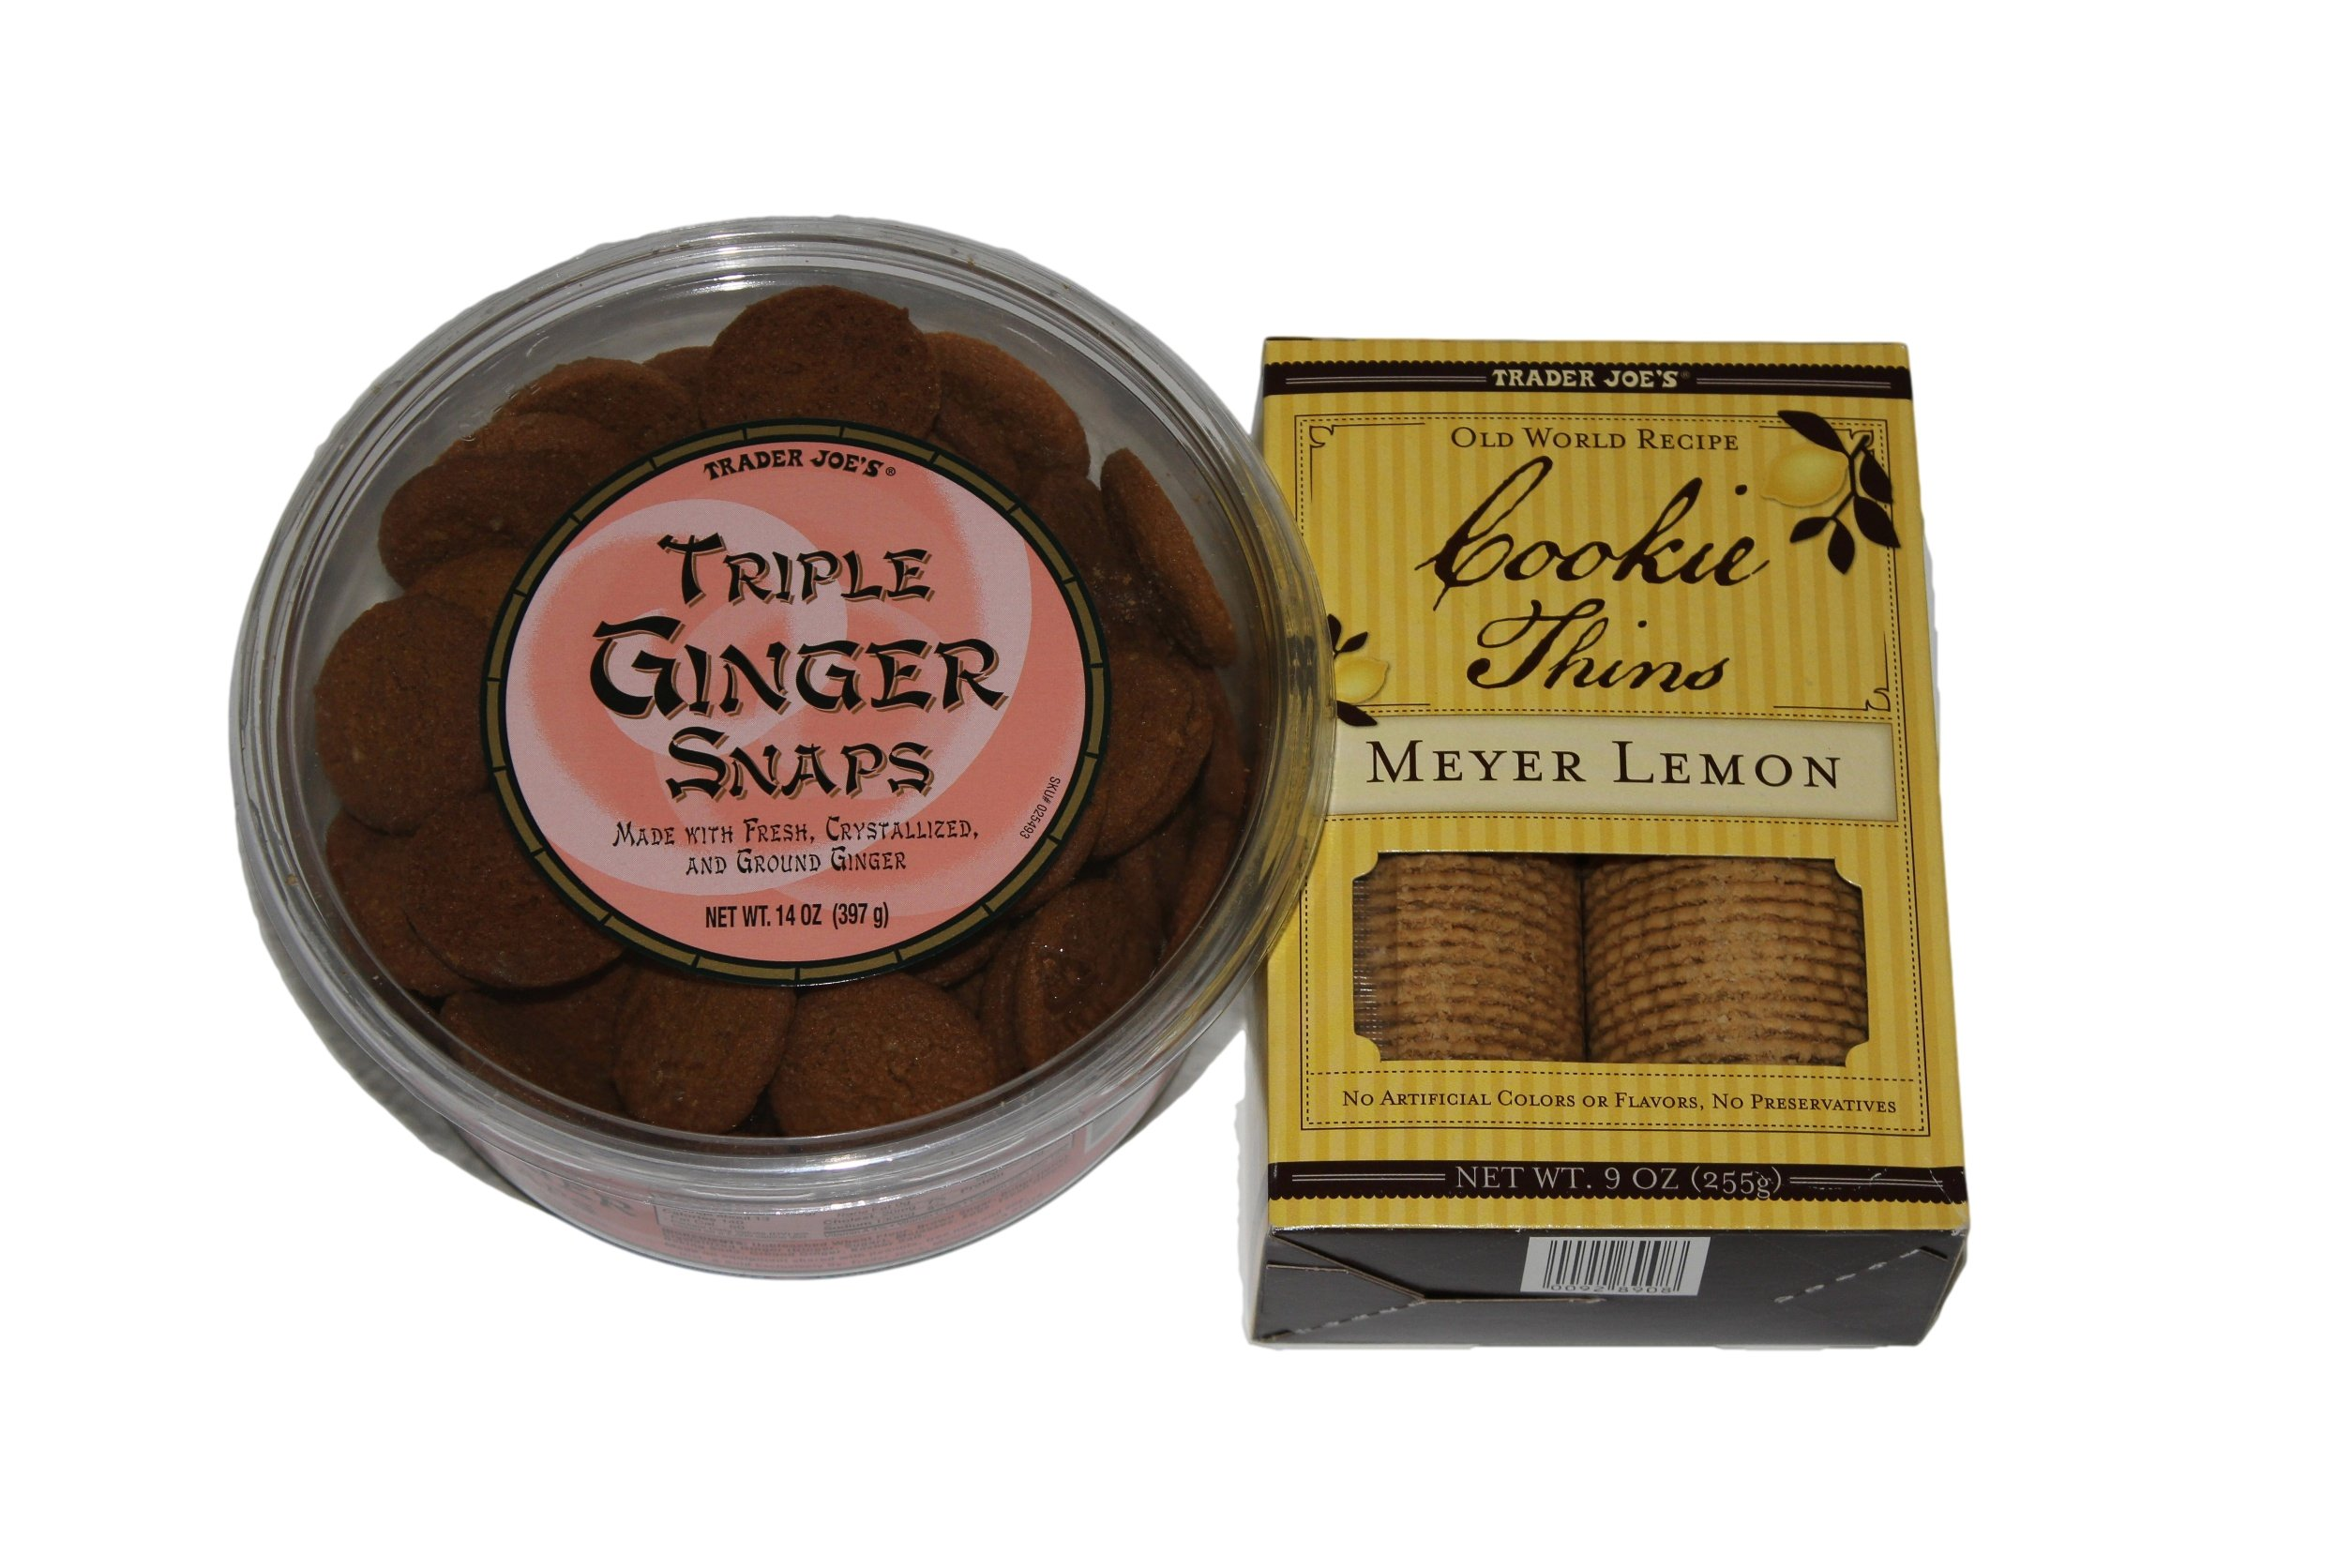 Trader Joes's Cookie Bundle, 2-pack, Triple Ginger Snaps and Meyer Lemon Cookie Thins by Trader Joe's